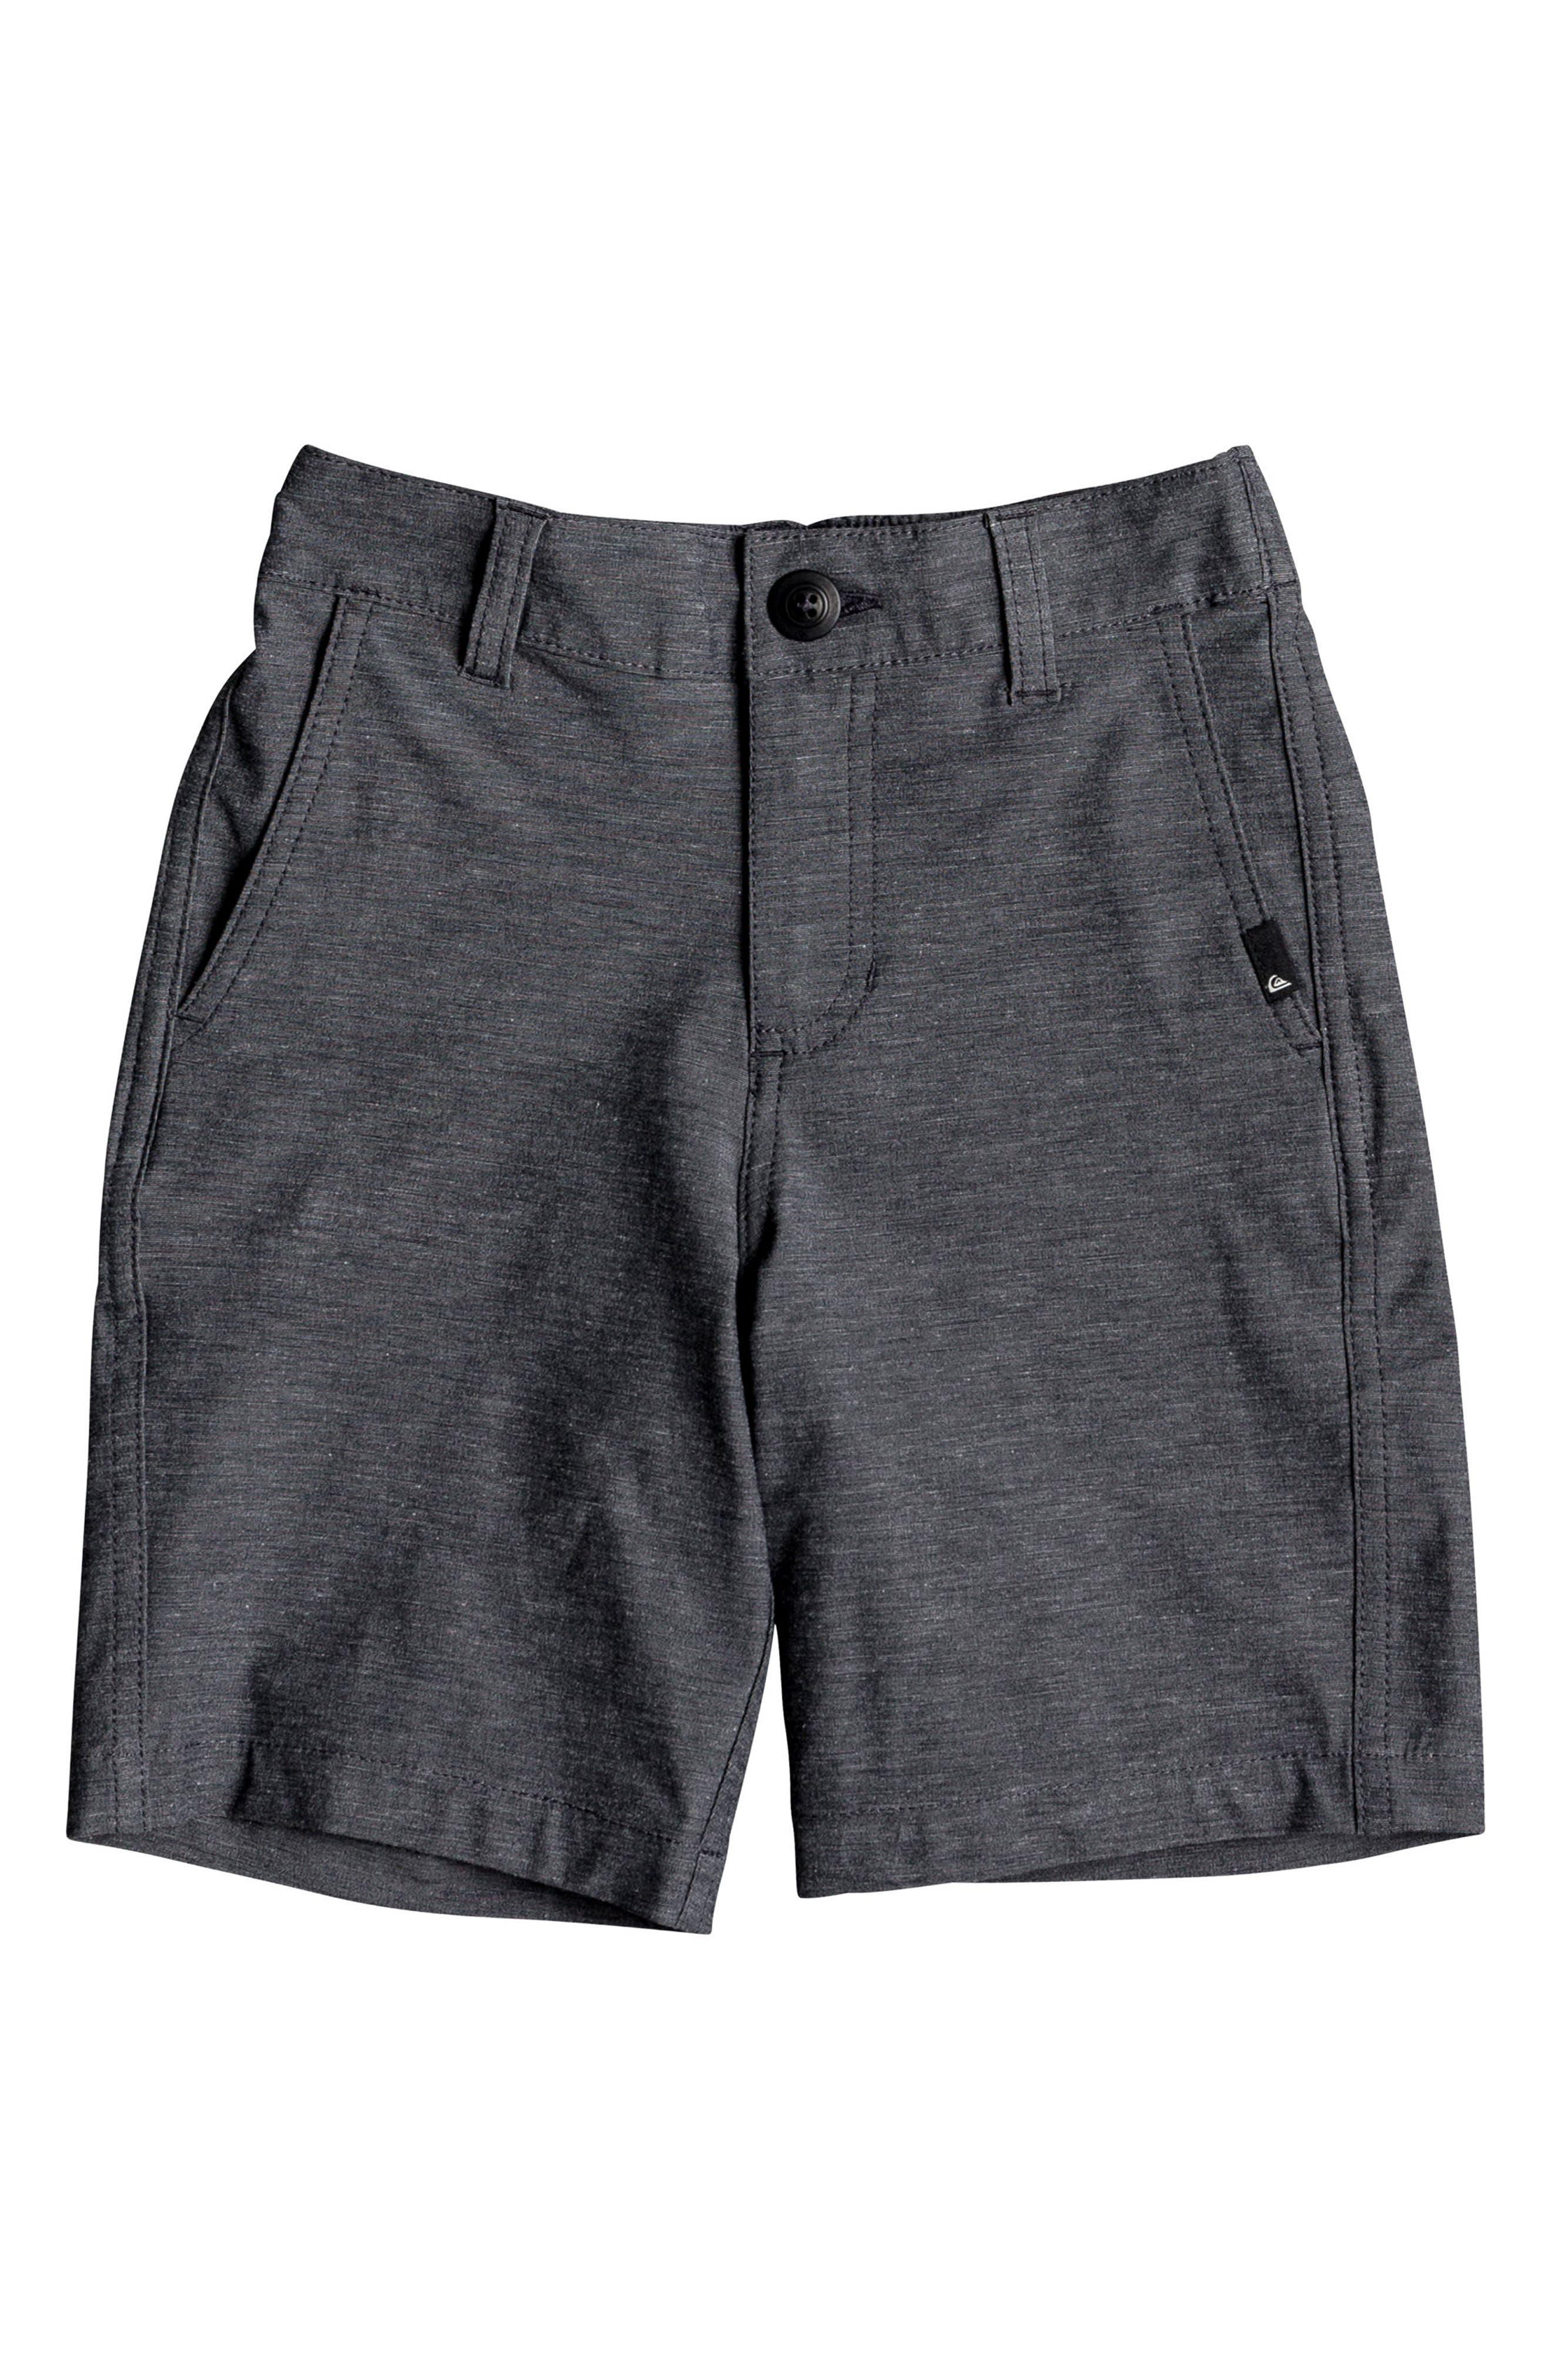 Main Image - Quiksilver Union Heather Amphibian Board Shorts (Toddler Boys & Little Boys)